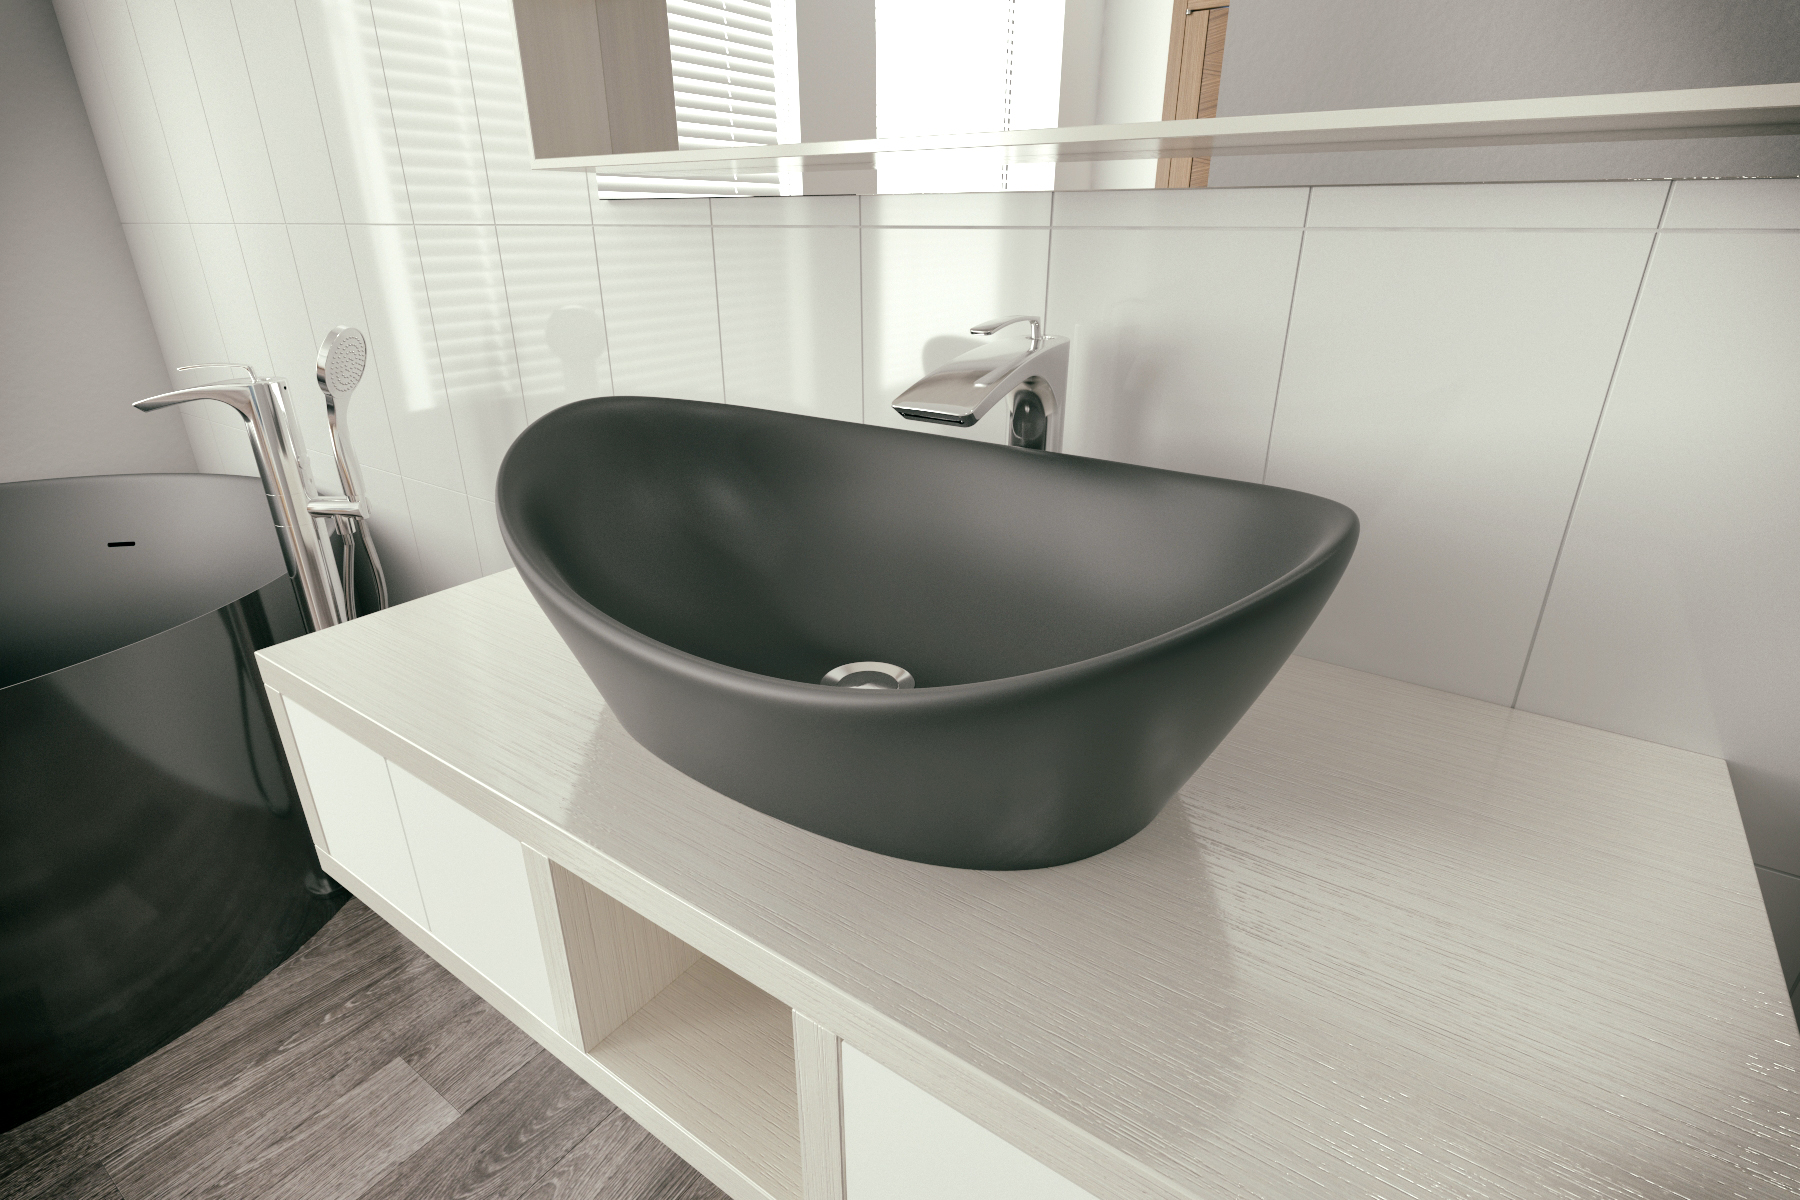 Luna Black Stone Lavatory by Aquatica (1)